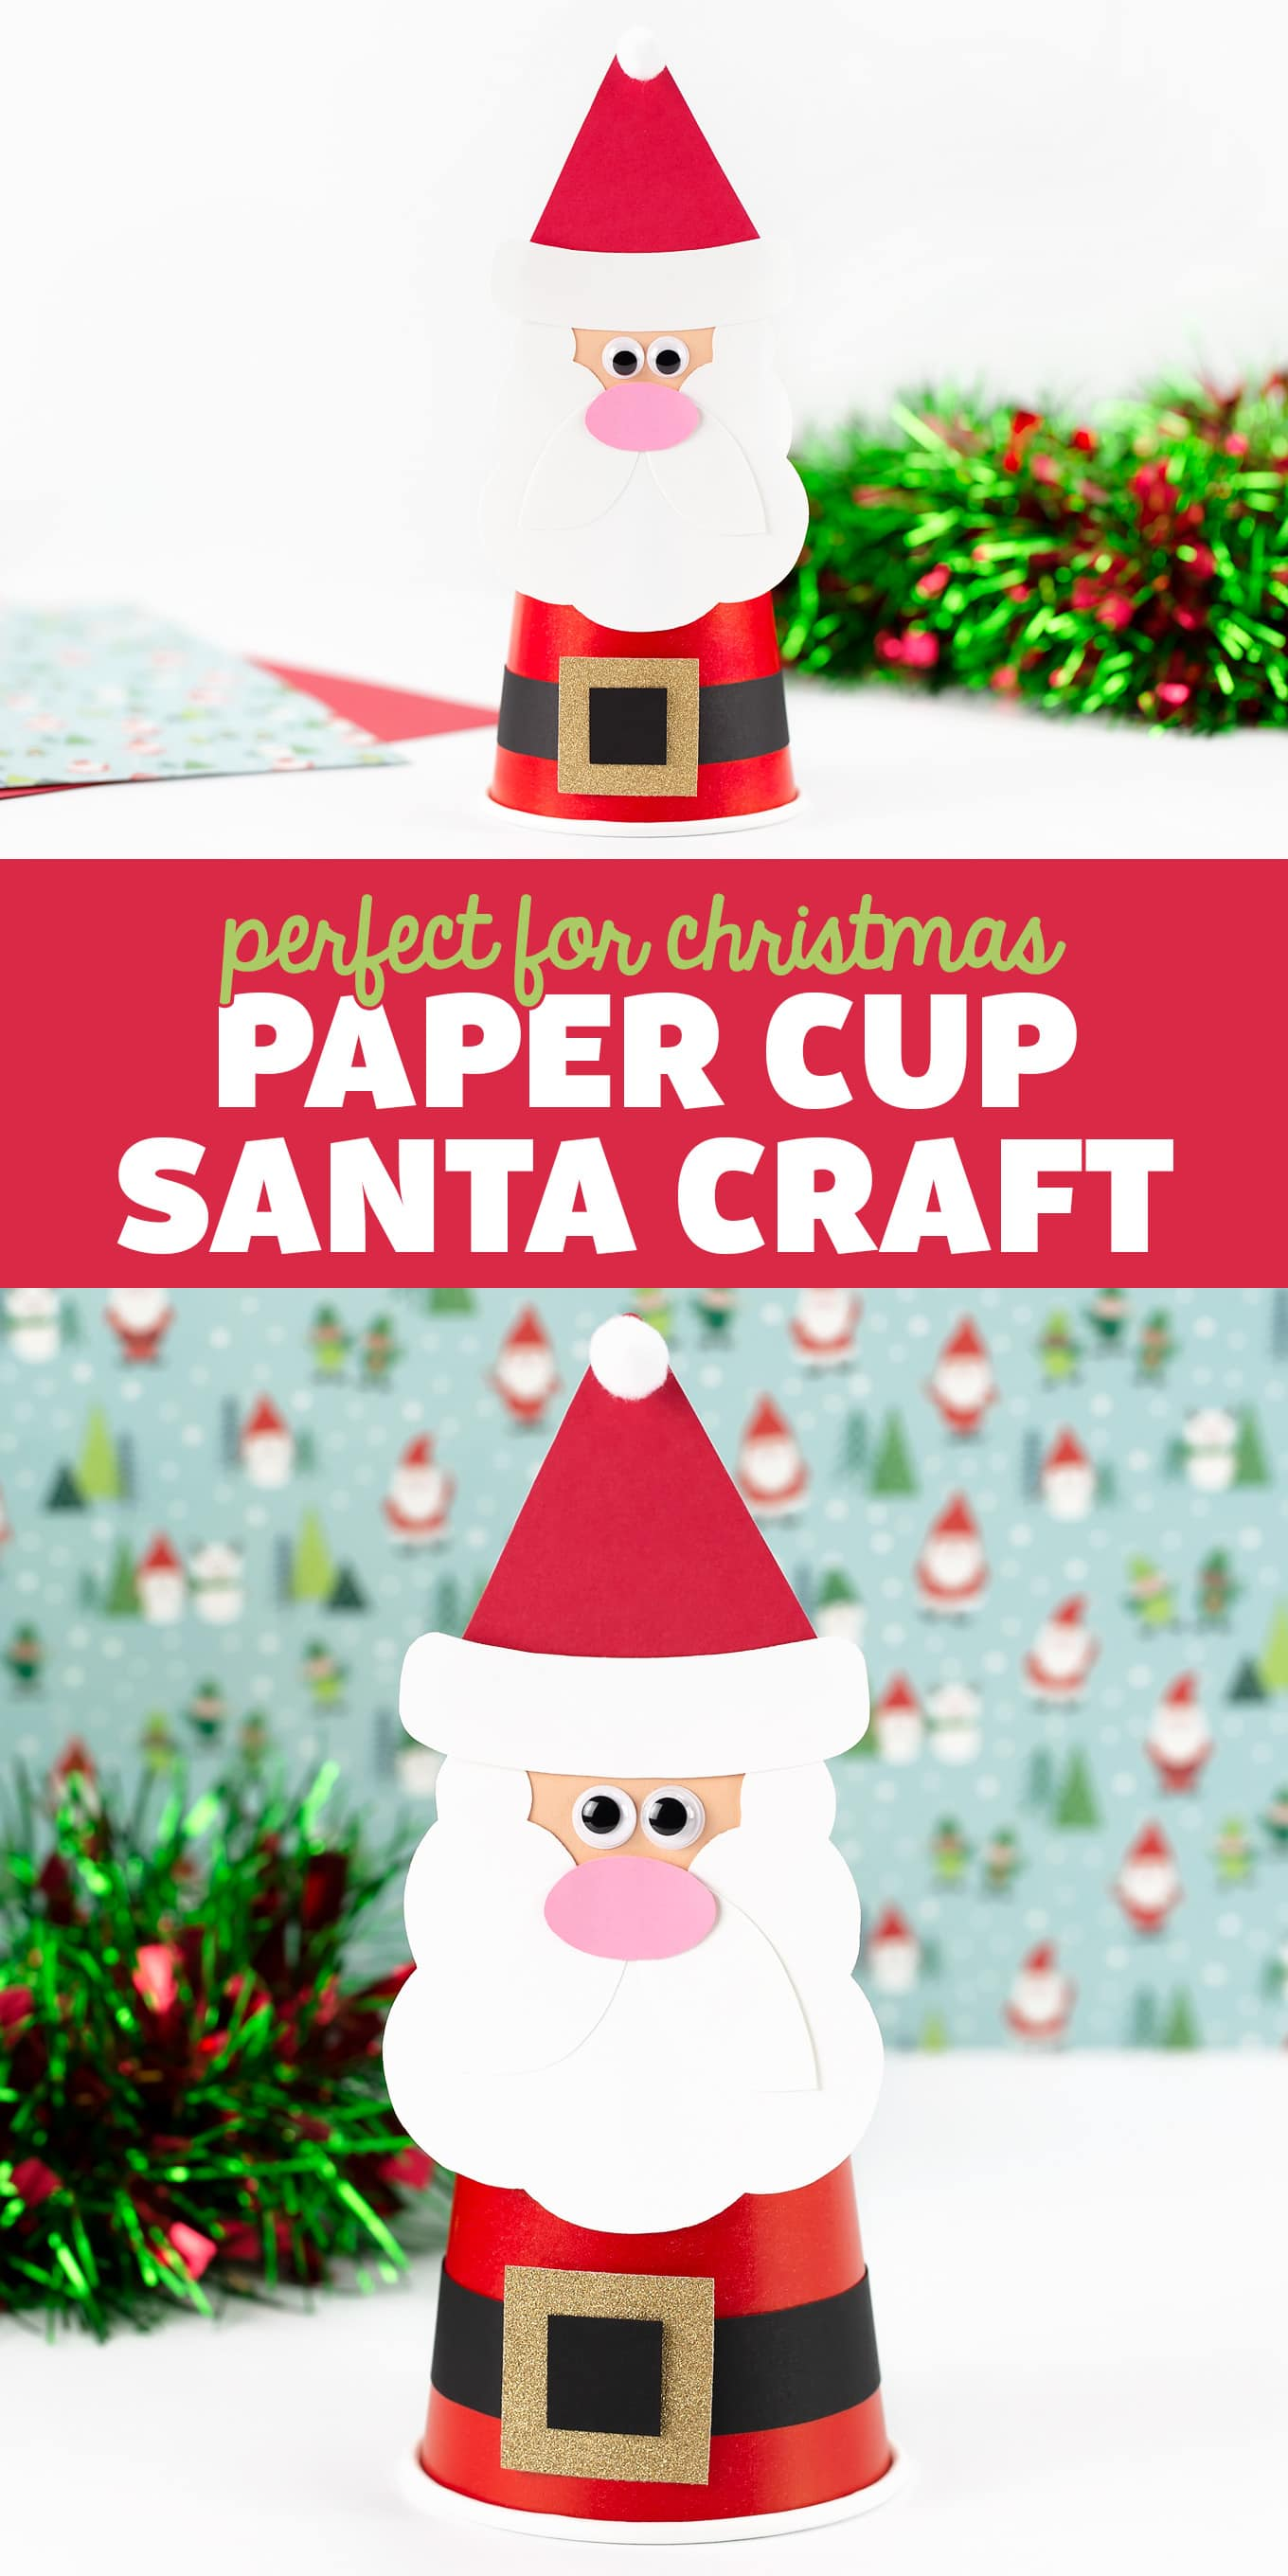 Paper Cup Santa Craft - This festive Paper Cup Santa Craft includes a free printable template, making it easy and fun for kids of all ages! via @firefliesandmudpies